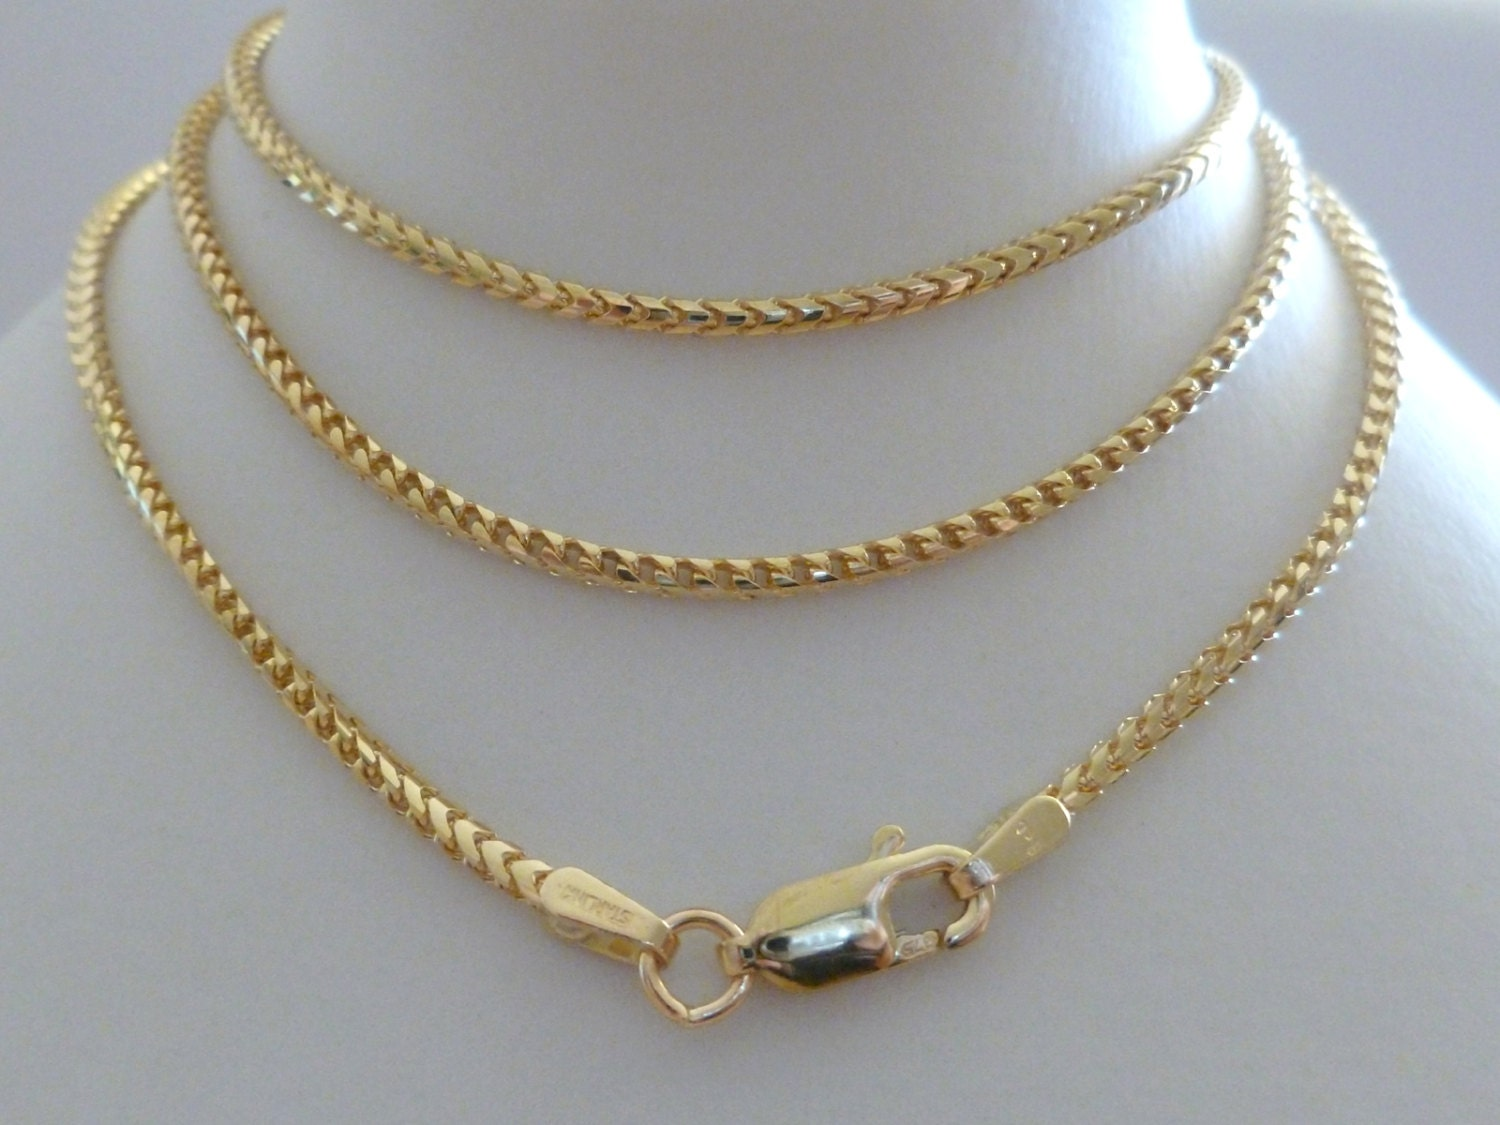 9ct Solid Gold Franco Chain 9ct 9k 10k 375 Men's Women